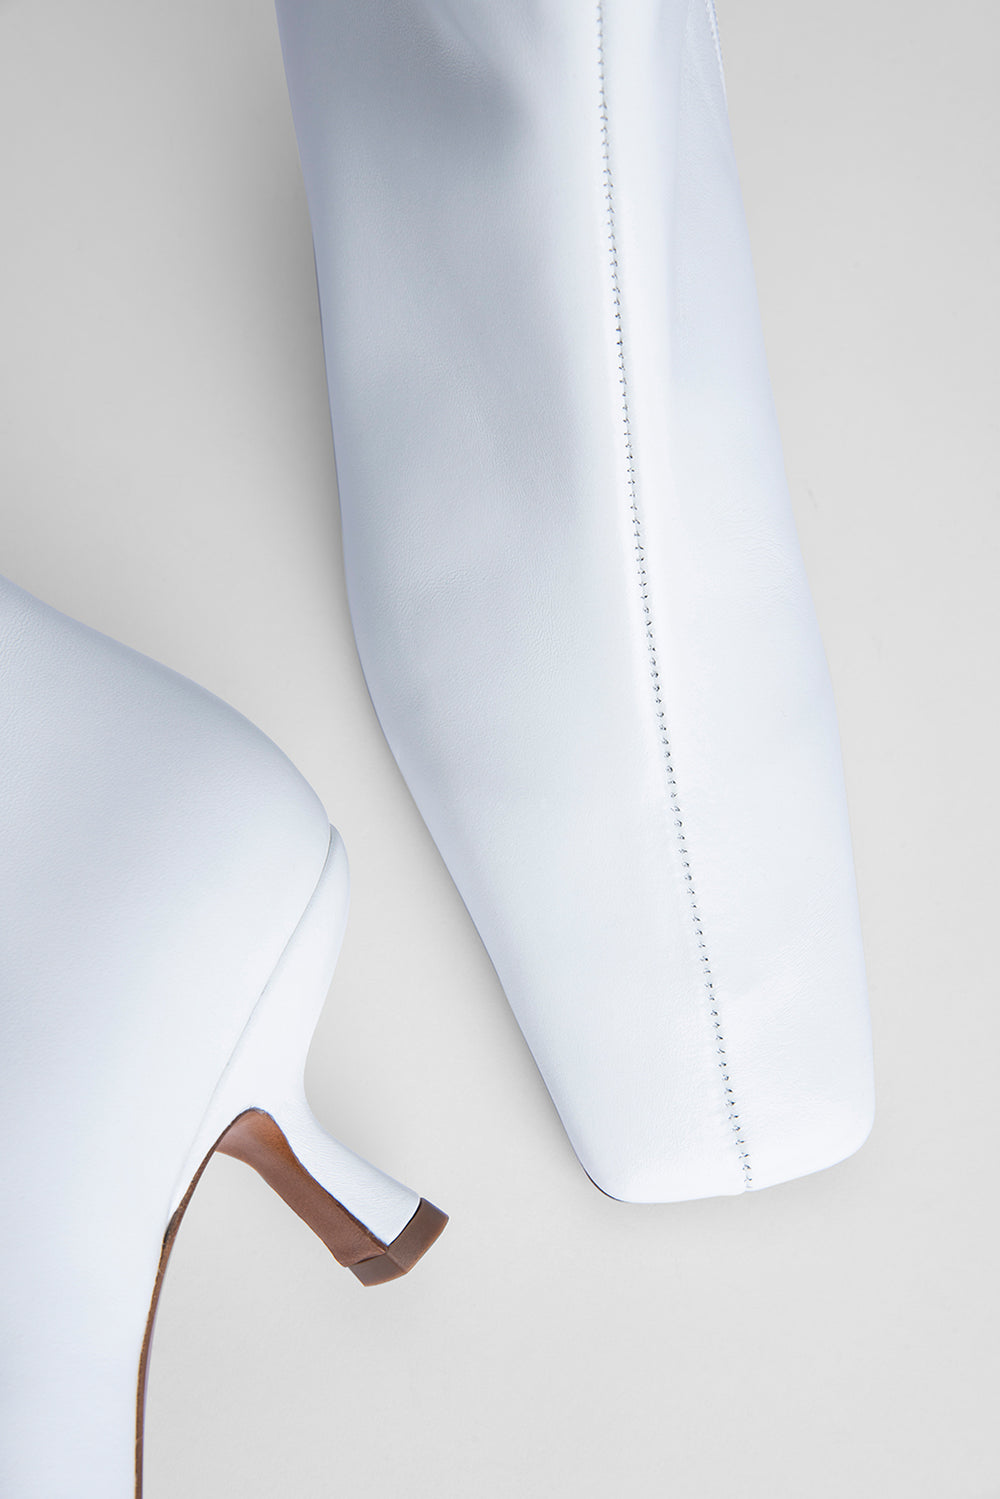 Lange White Nappa Leather